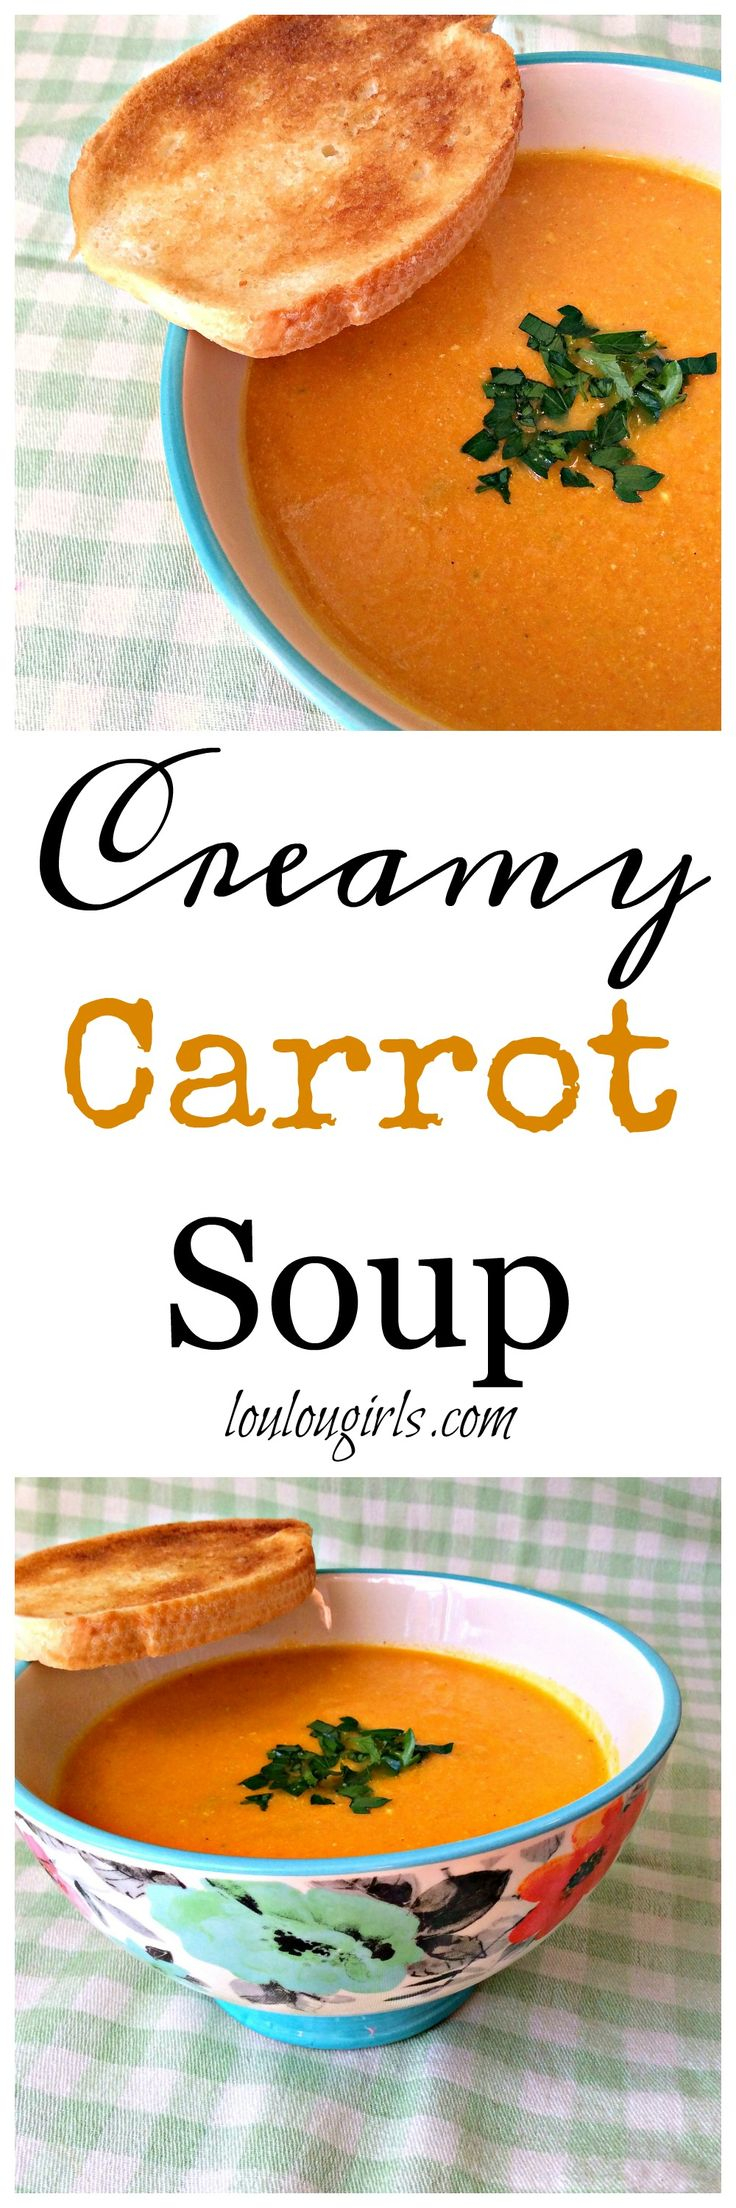 CREAMY CARROT SOUP WITH A HINT OF JALAPENO! #carrot #soup #recipe ...